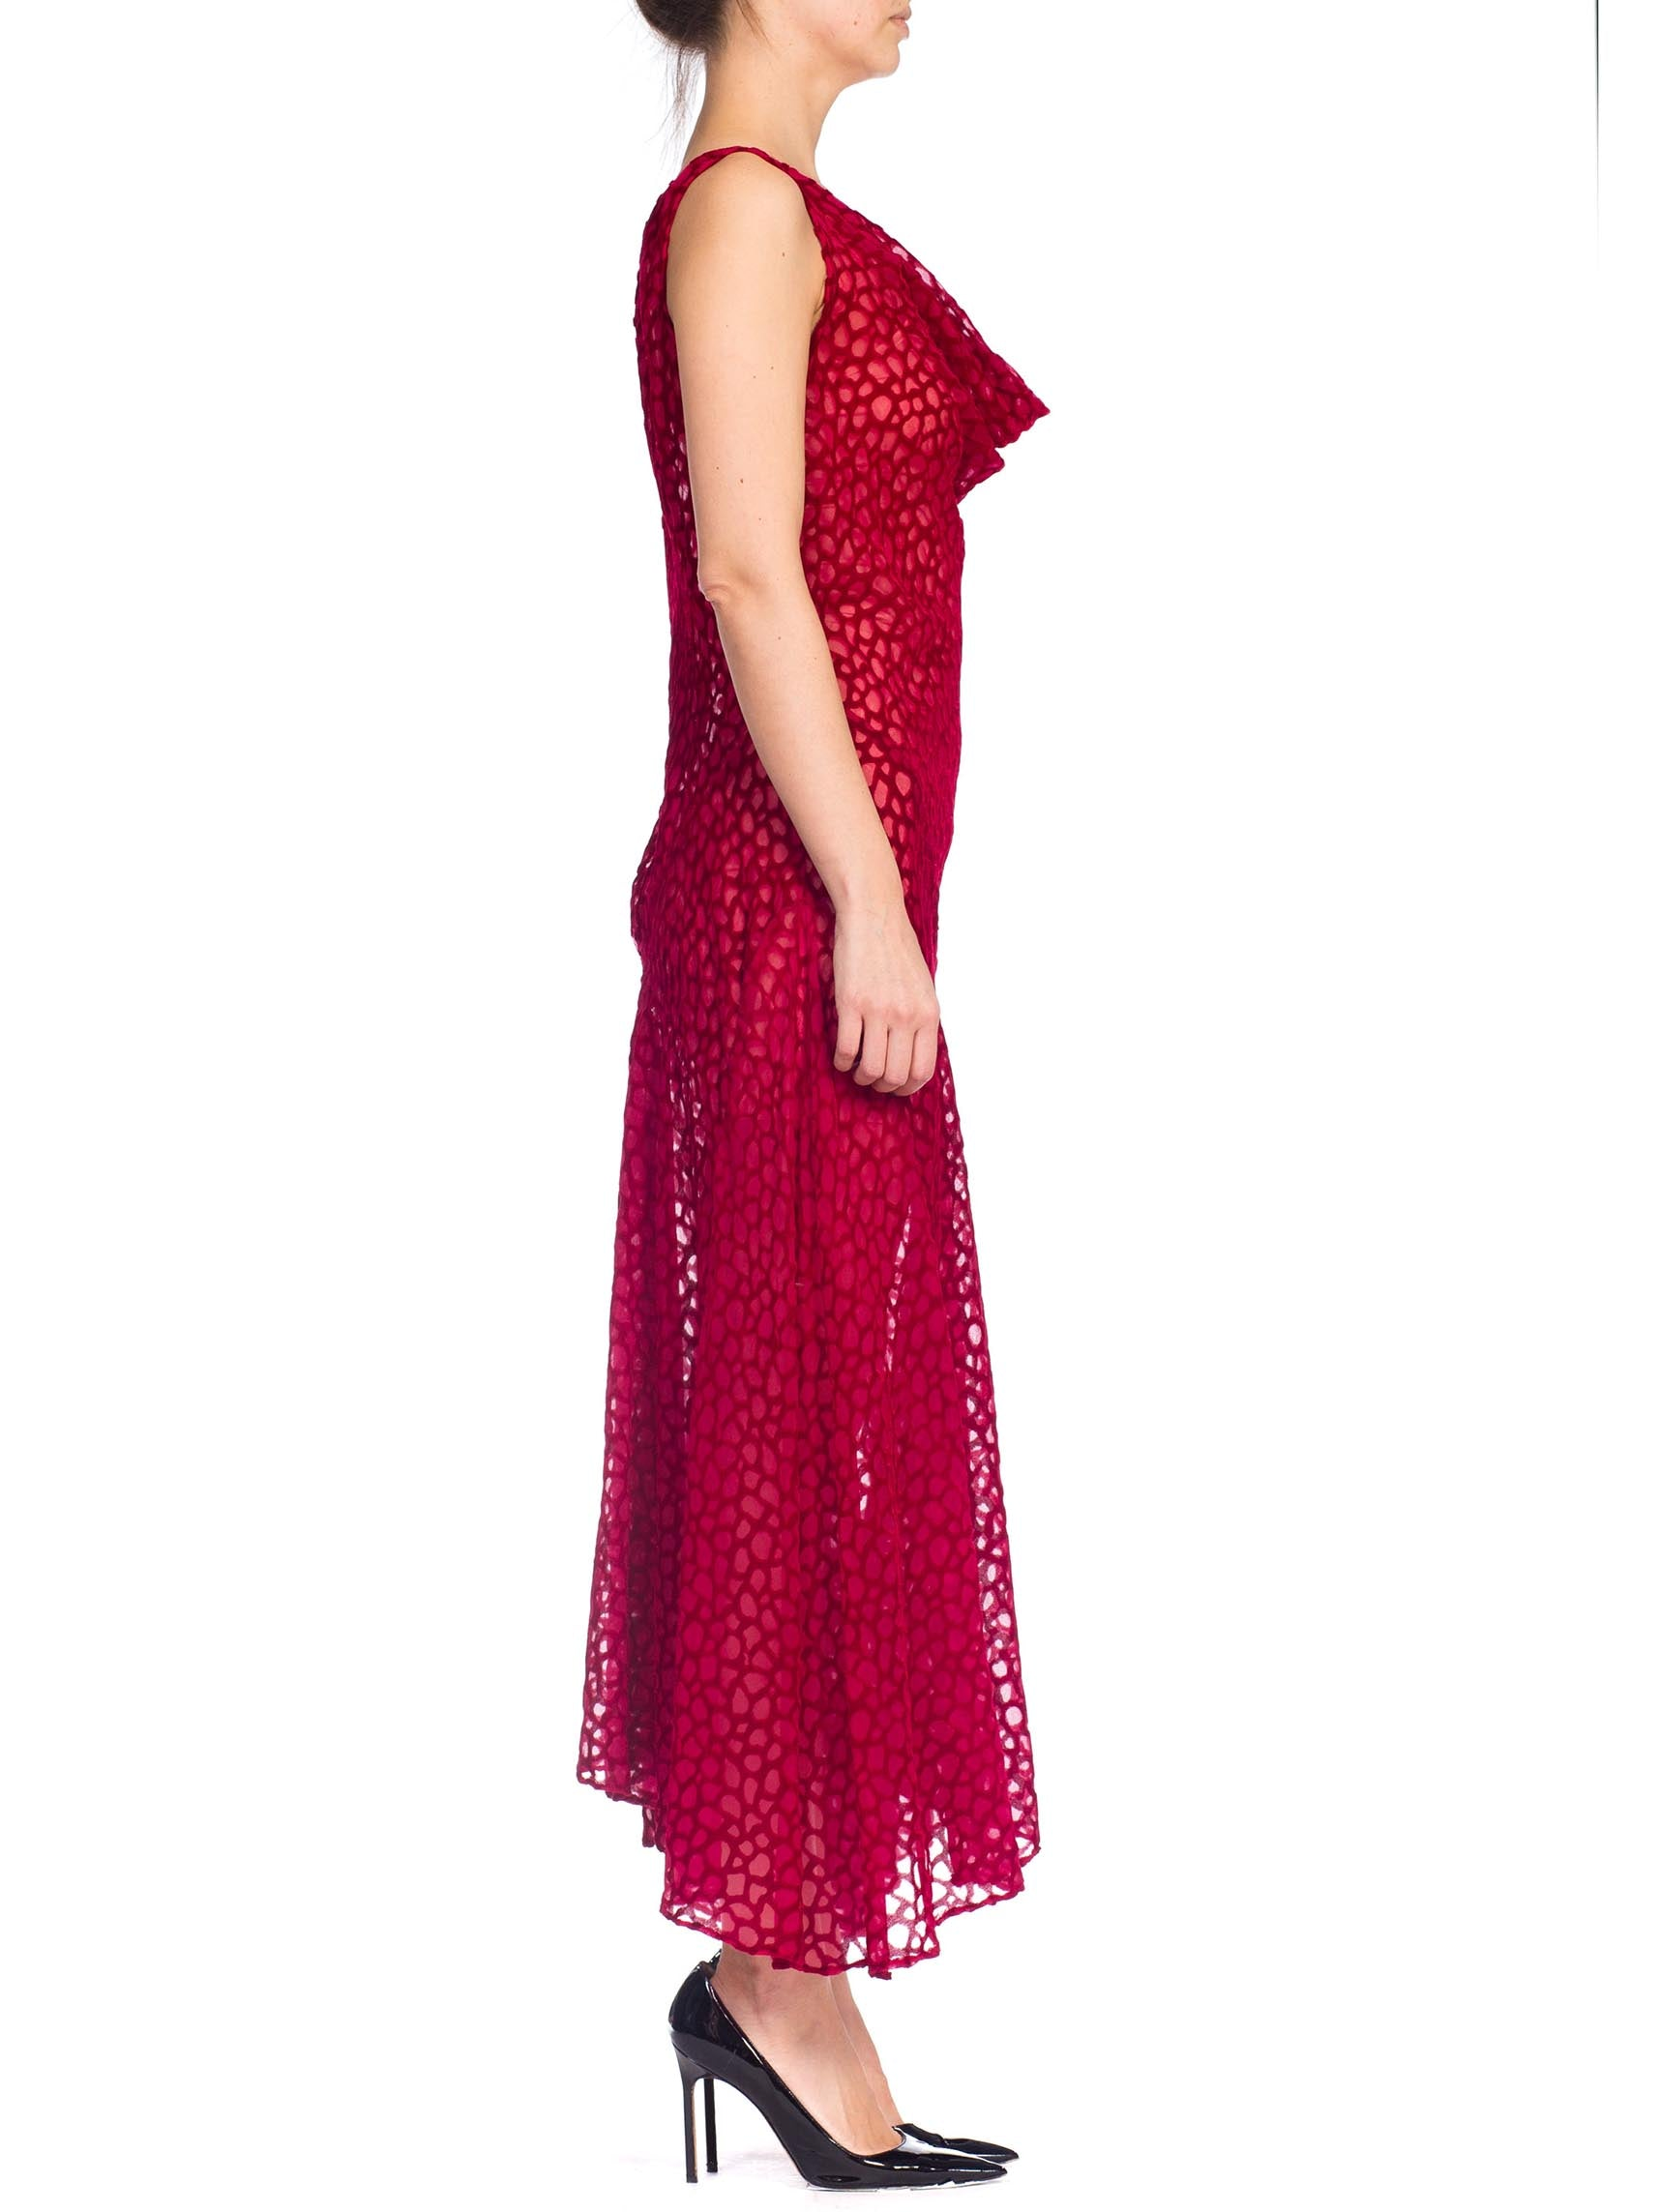 1990S JOHN GALLIANO Style Cranberry Red Bias Cut Rayon Blend Burnout Velvet Gown